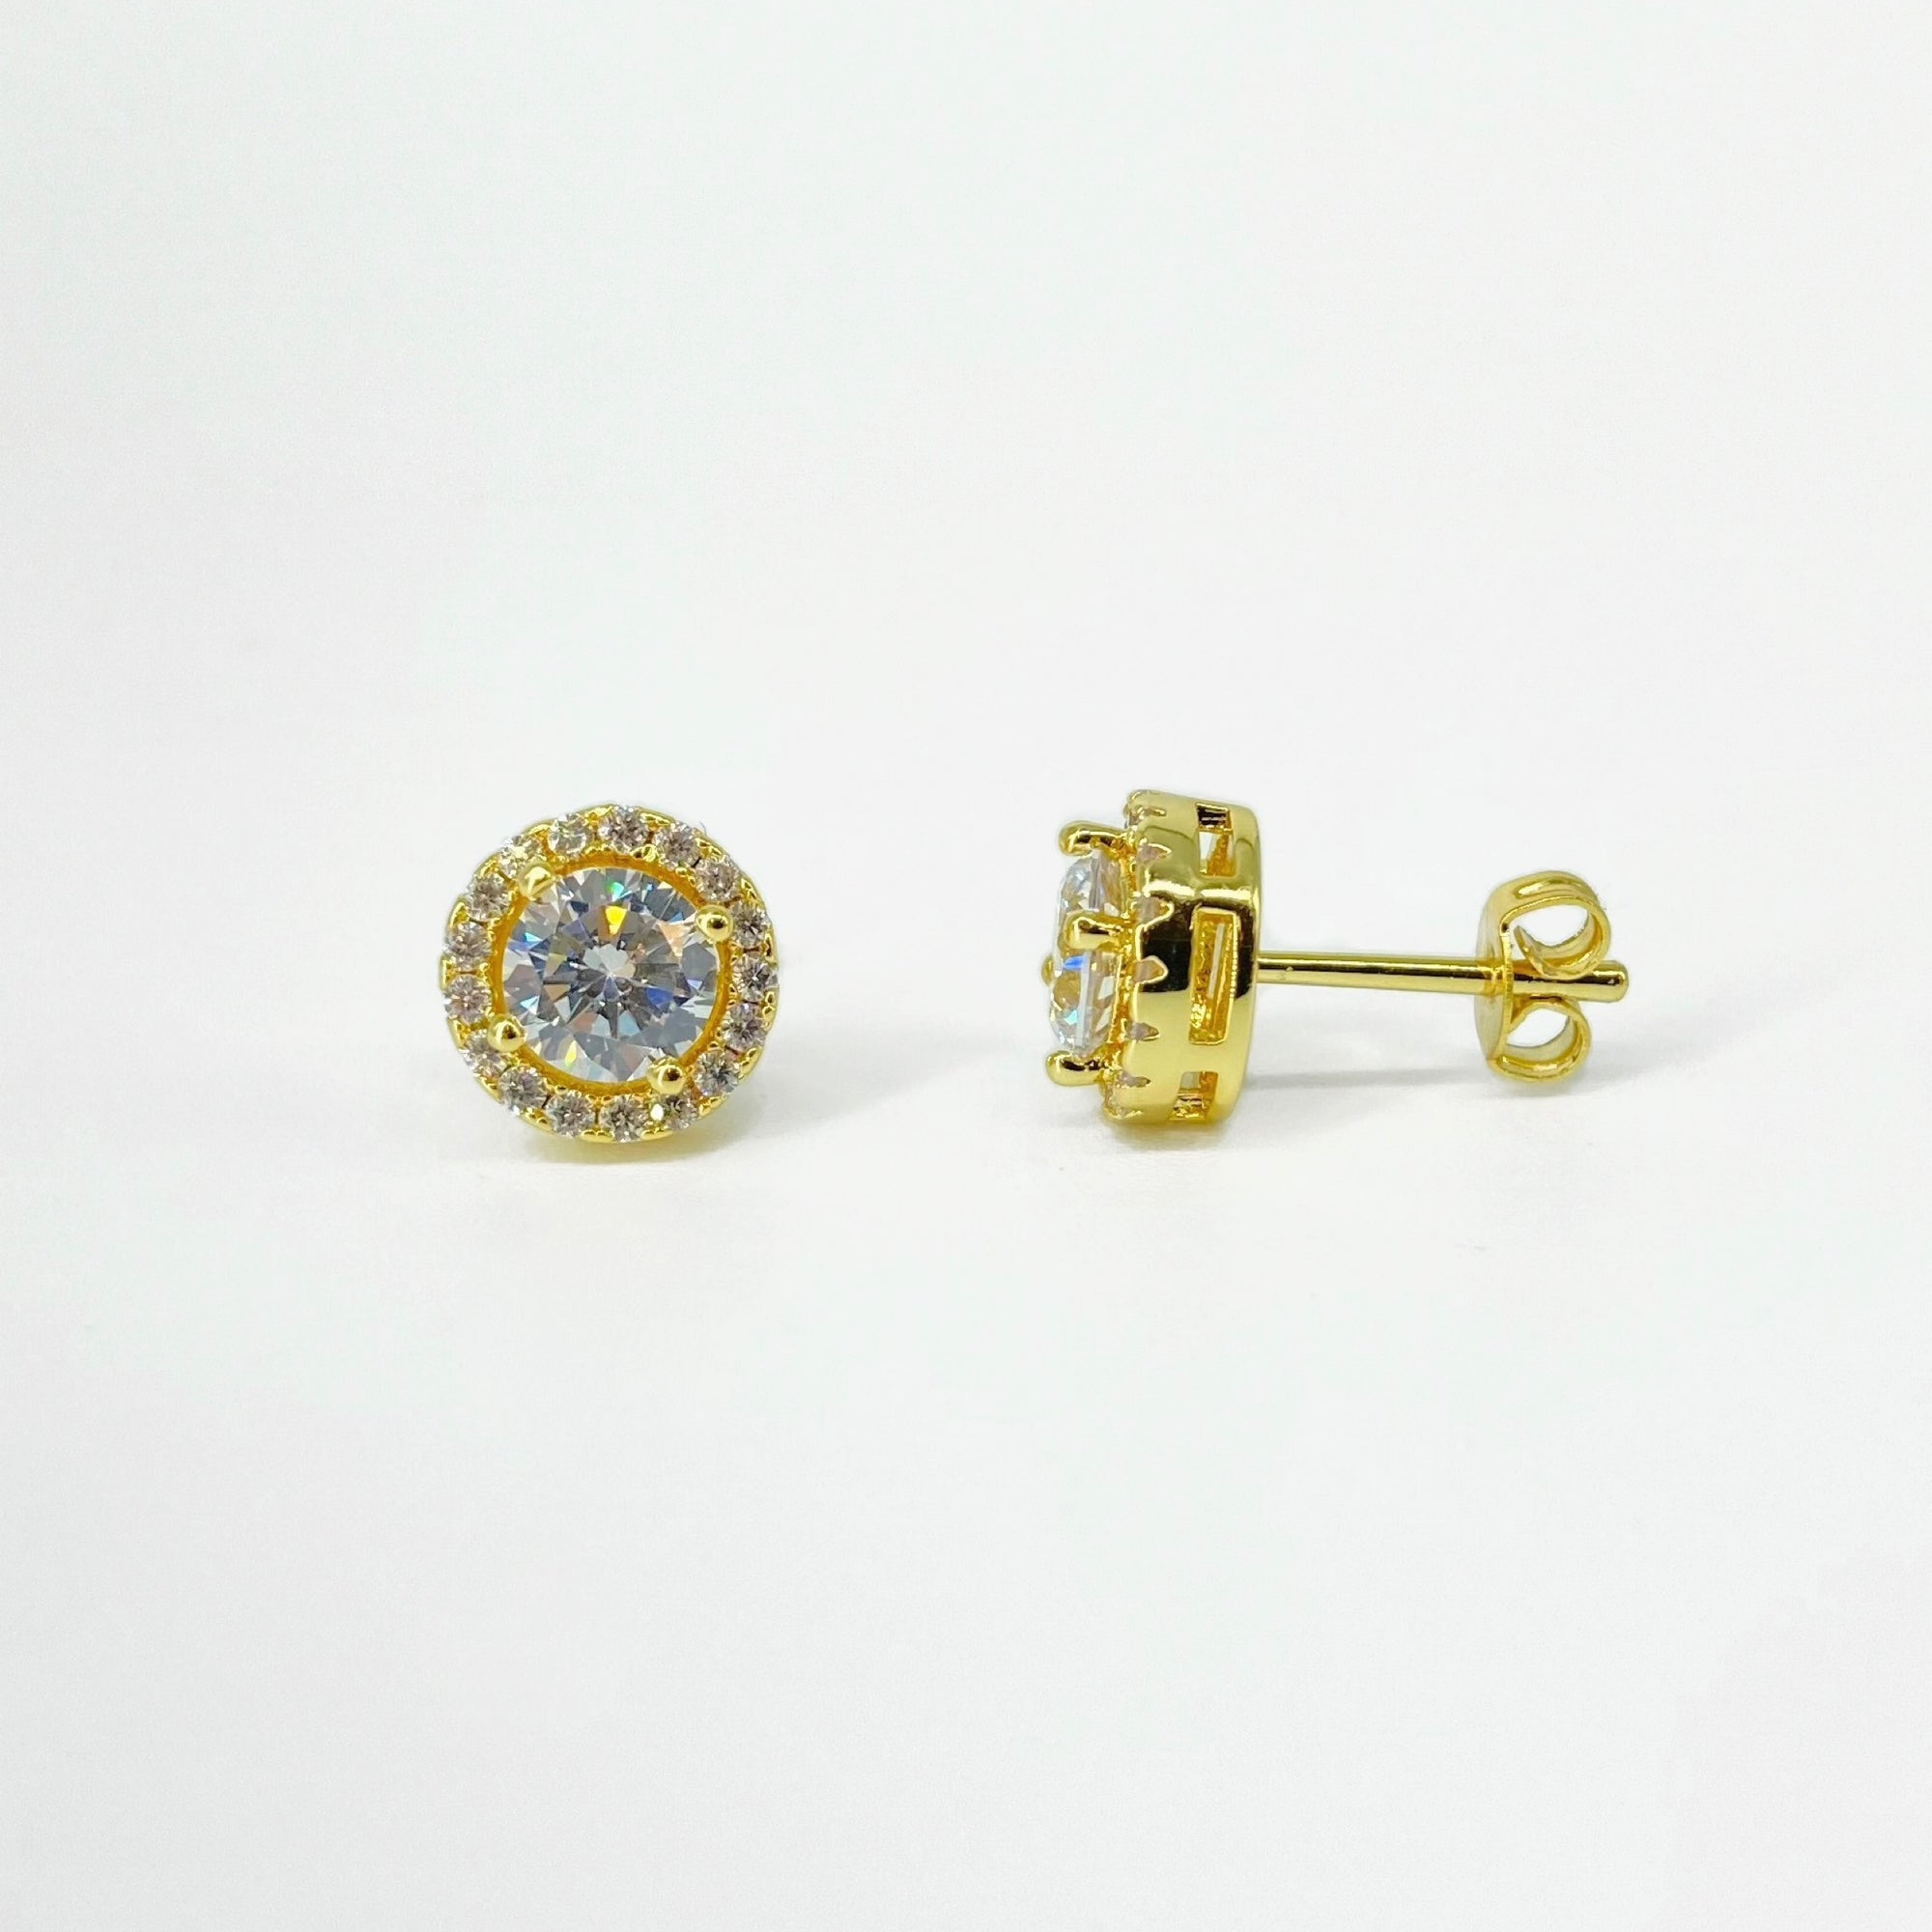 Gold Victoria Diamond Simulant Earrings